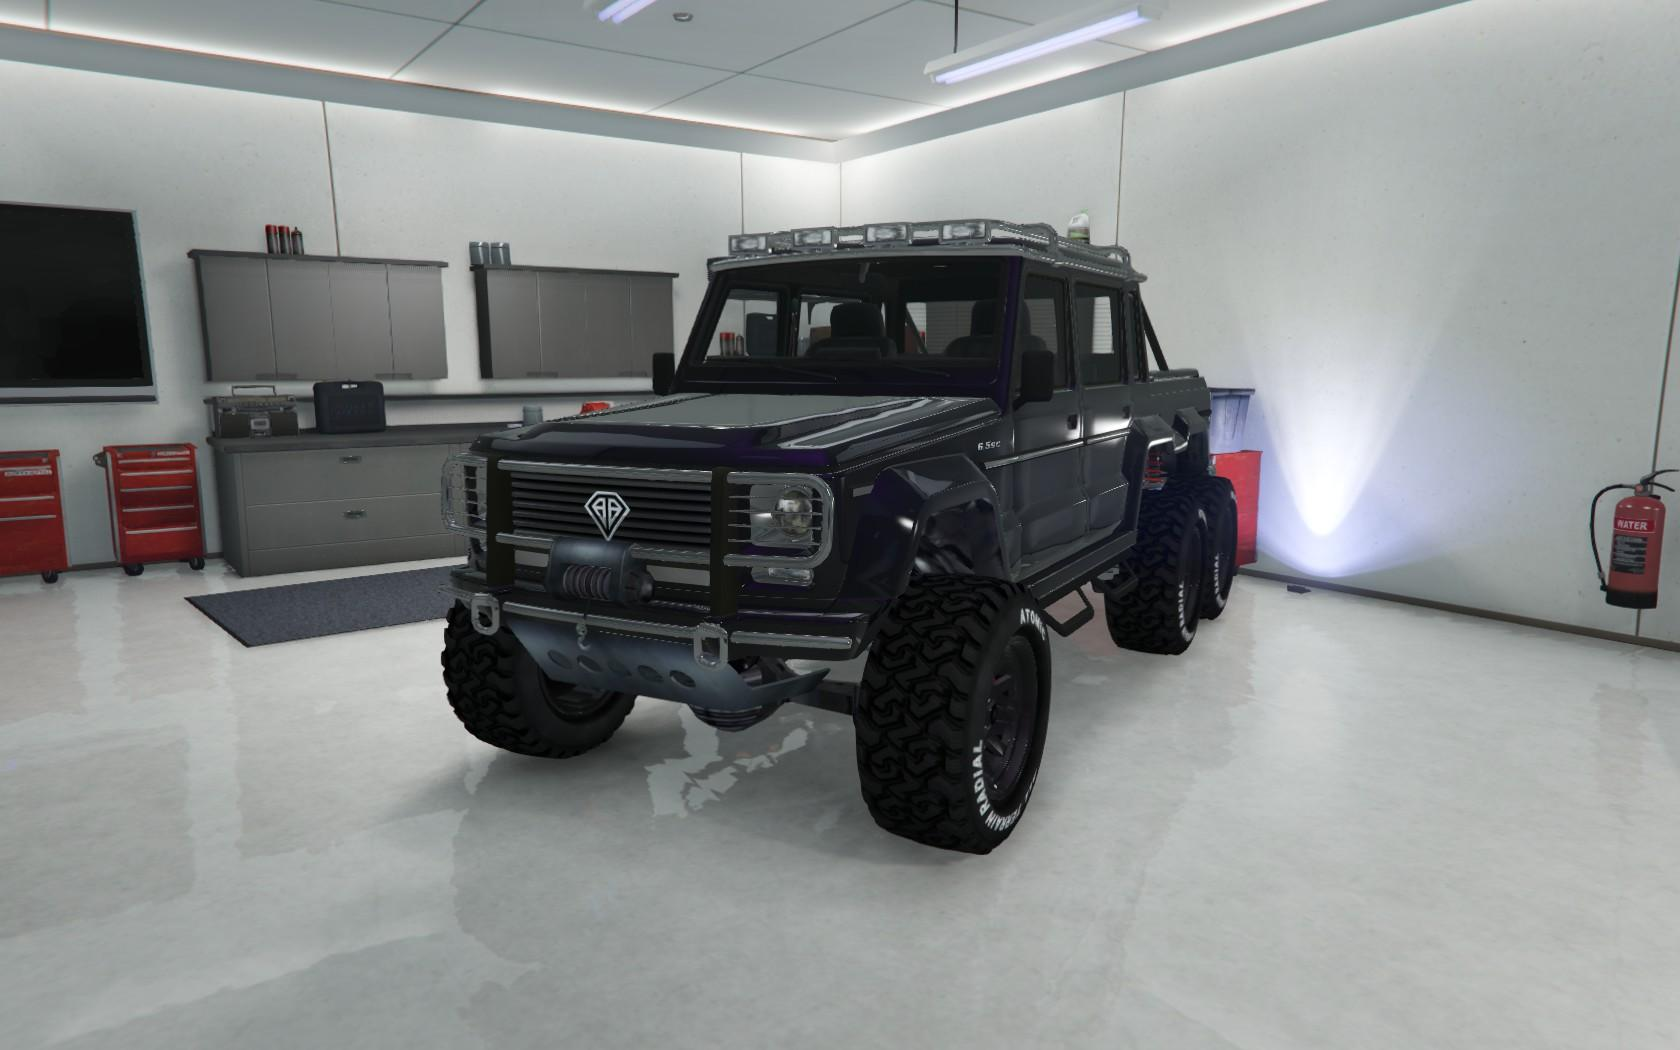 Custom Dubsta 6x6 by No Limit5